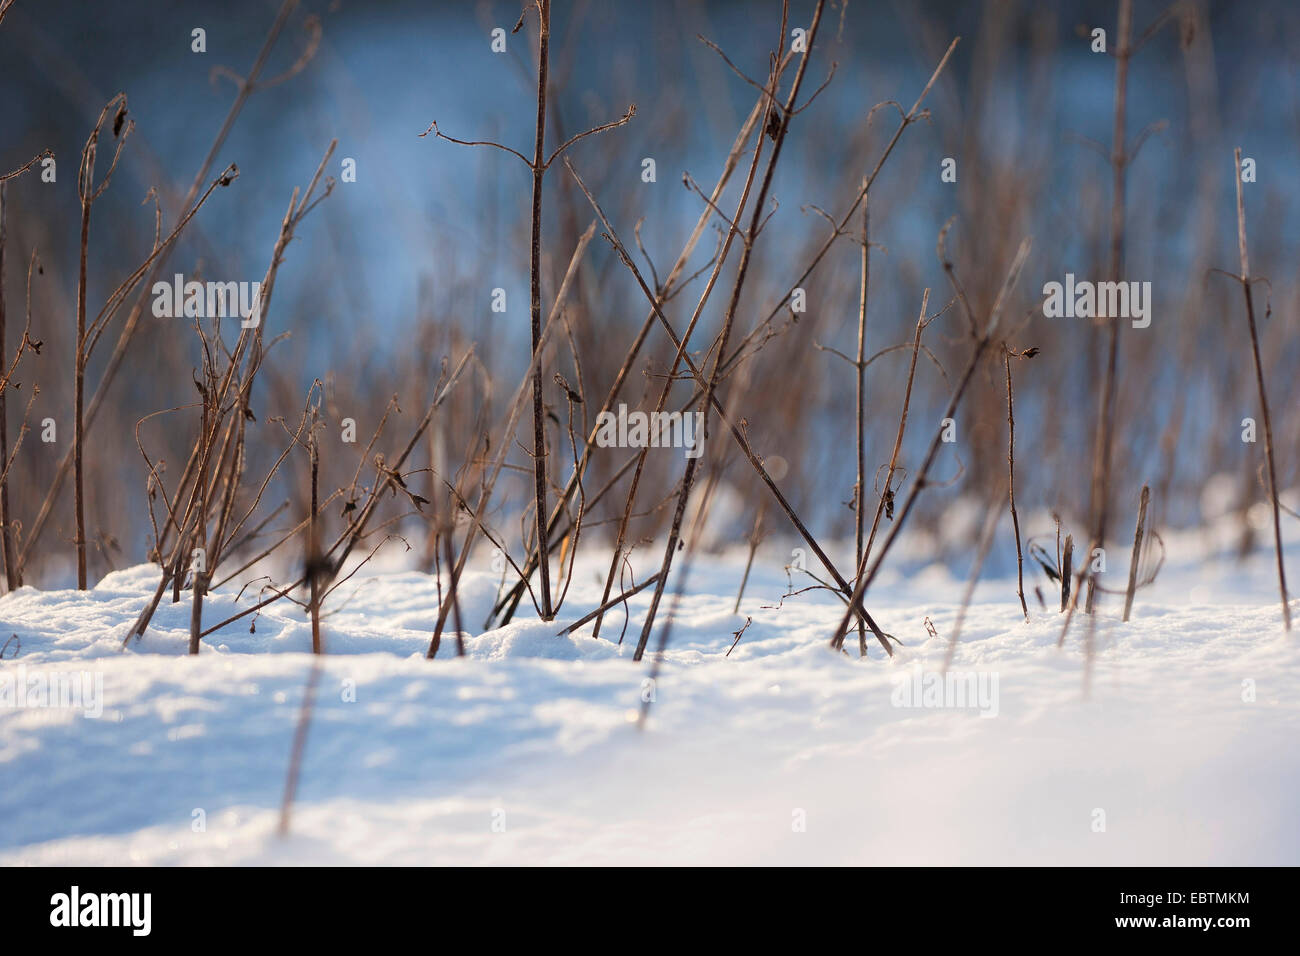 withered blades in snow, Germany, Rhineland-Palatinate - Stock Image